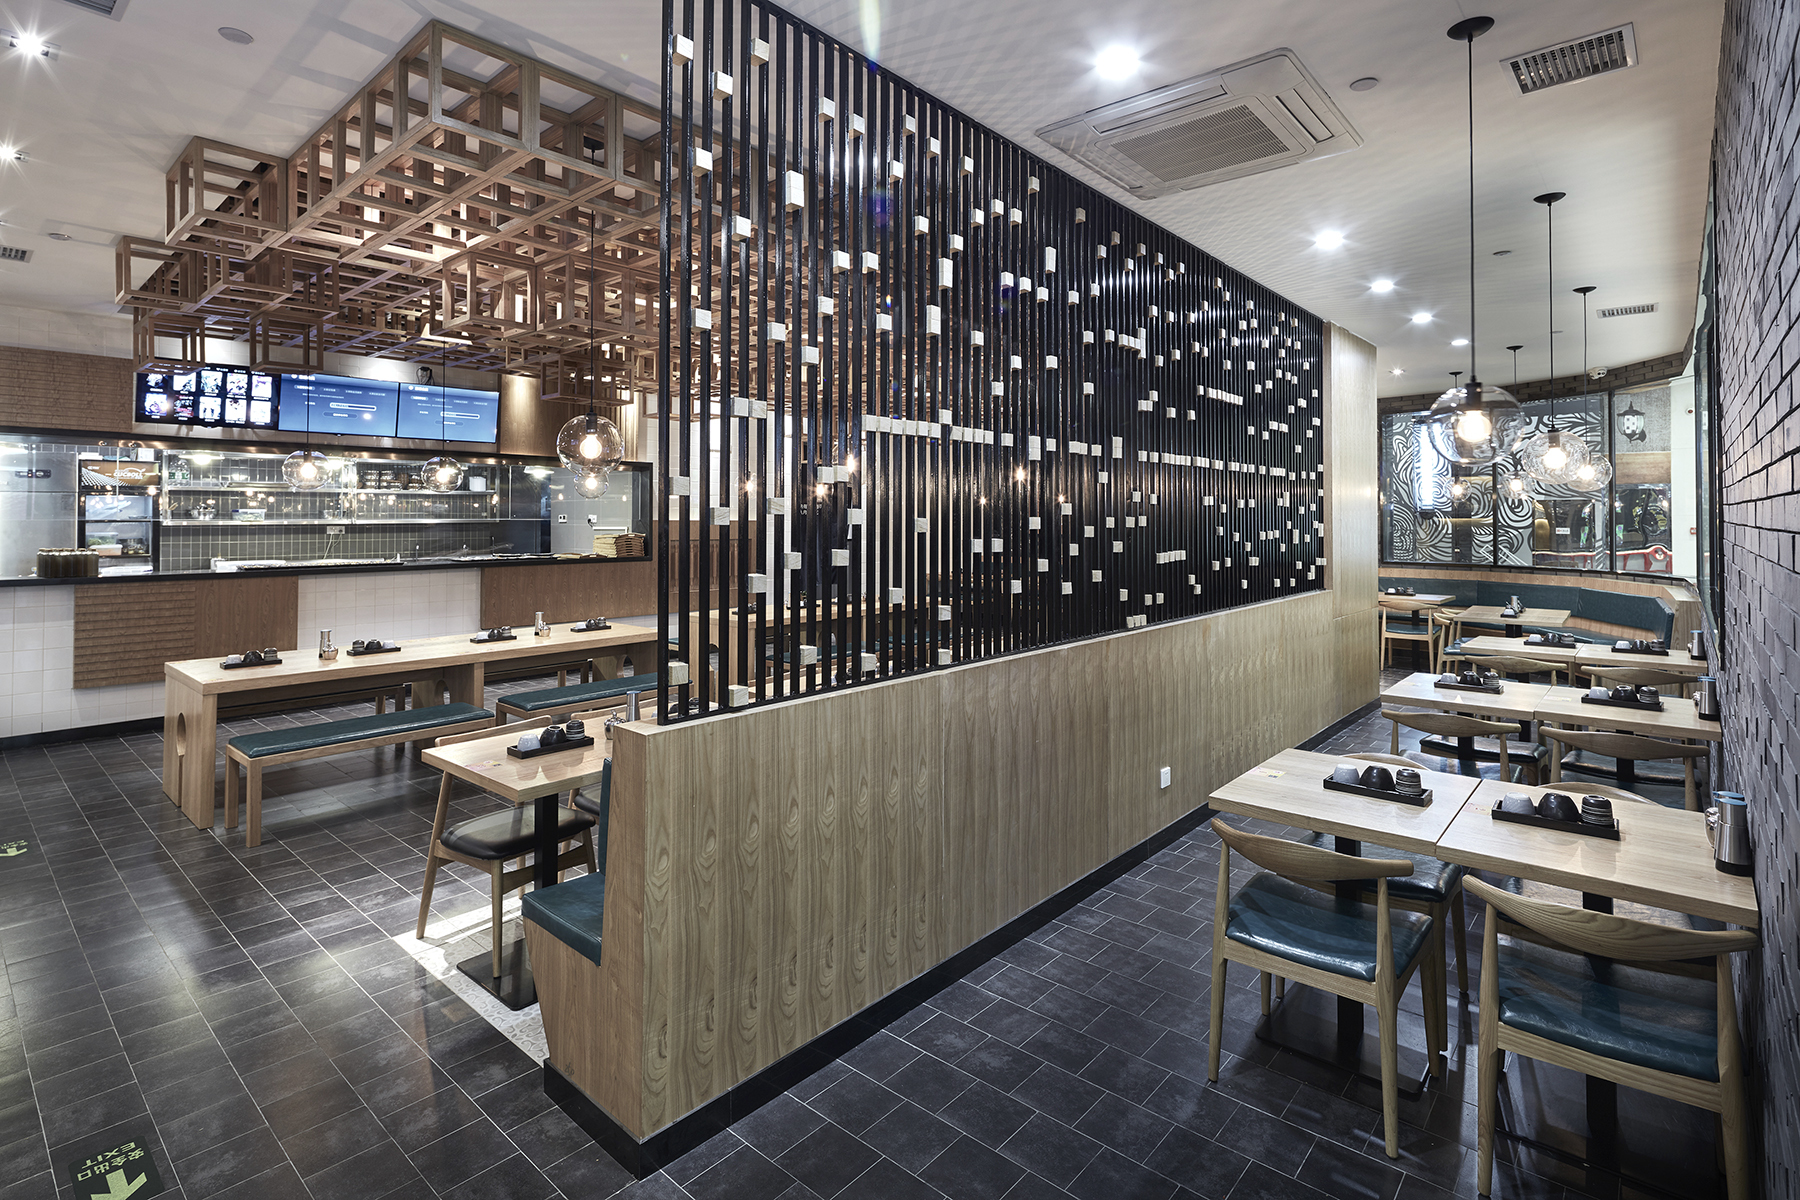 2016 restaurant bar design awards announced - Gray Restaurant 2016